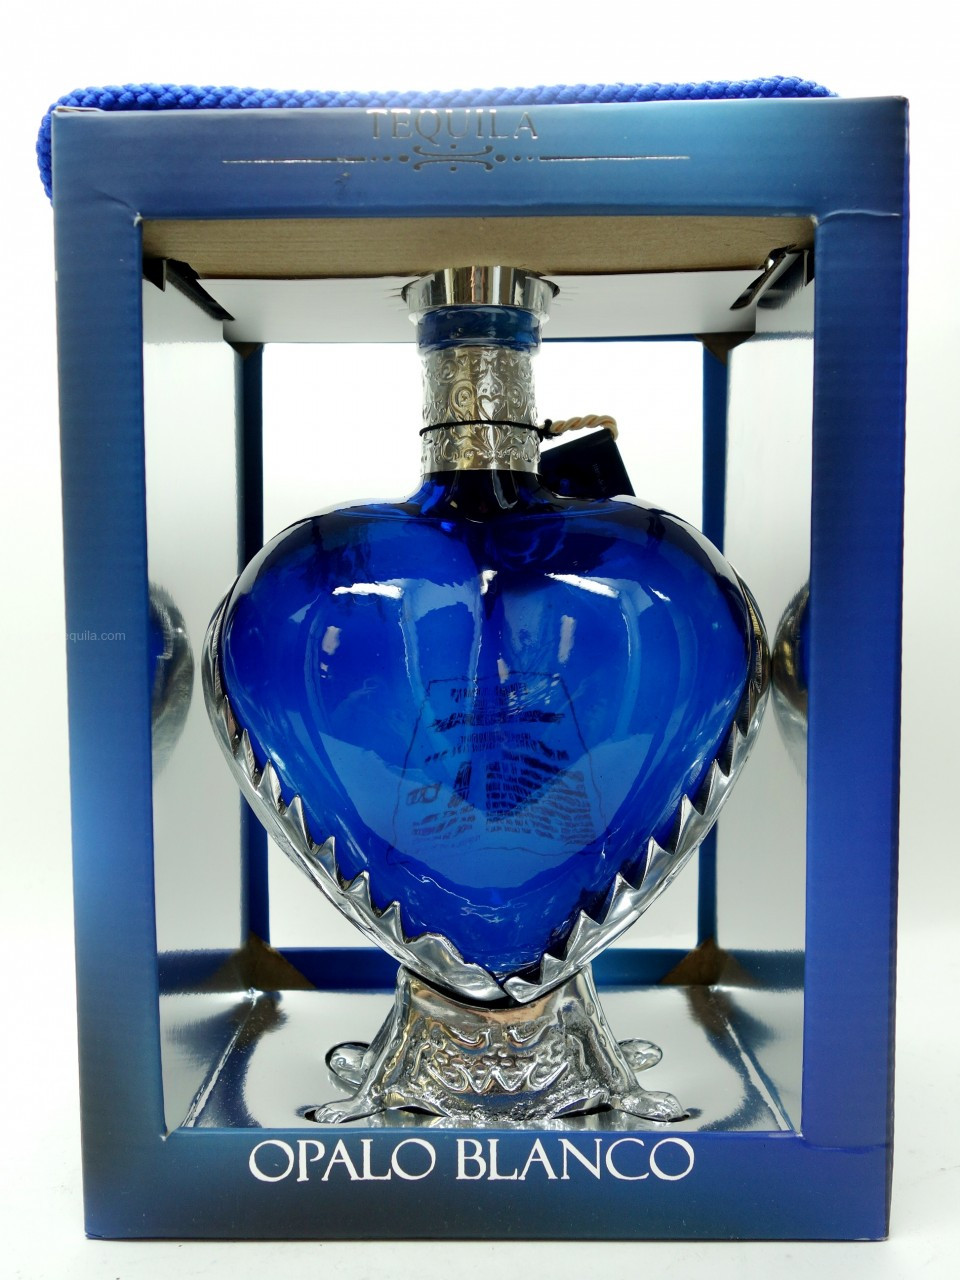 Grand Love Silver Tequila Blue Old Town Tequila